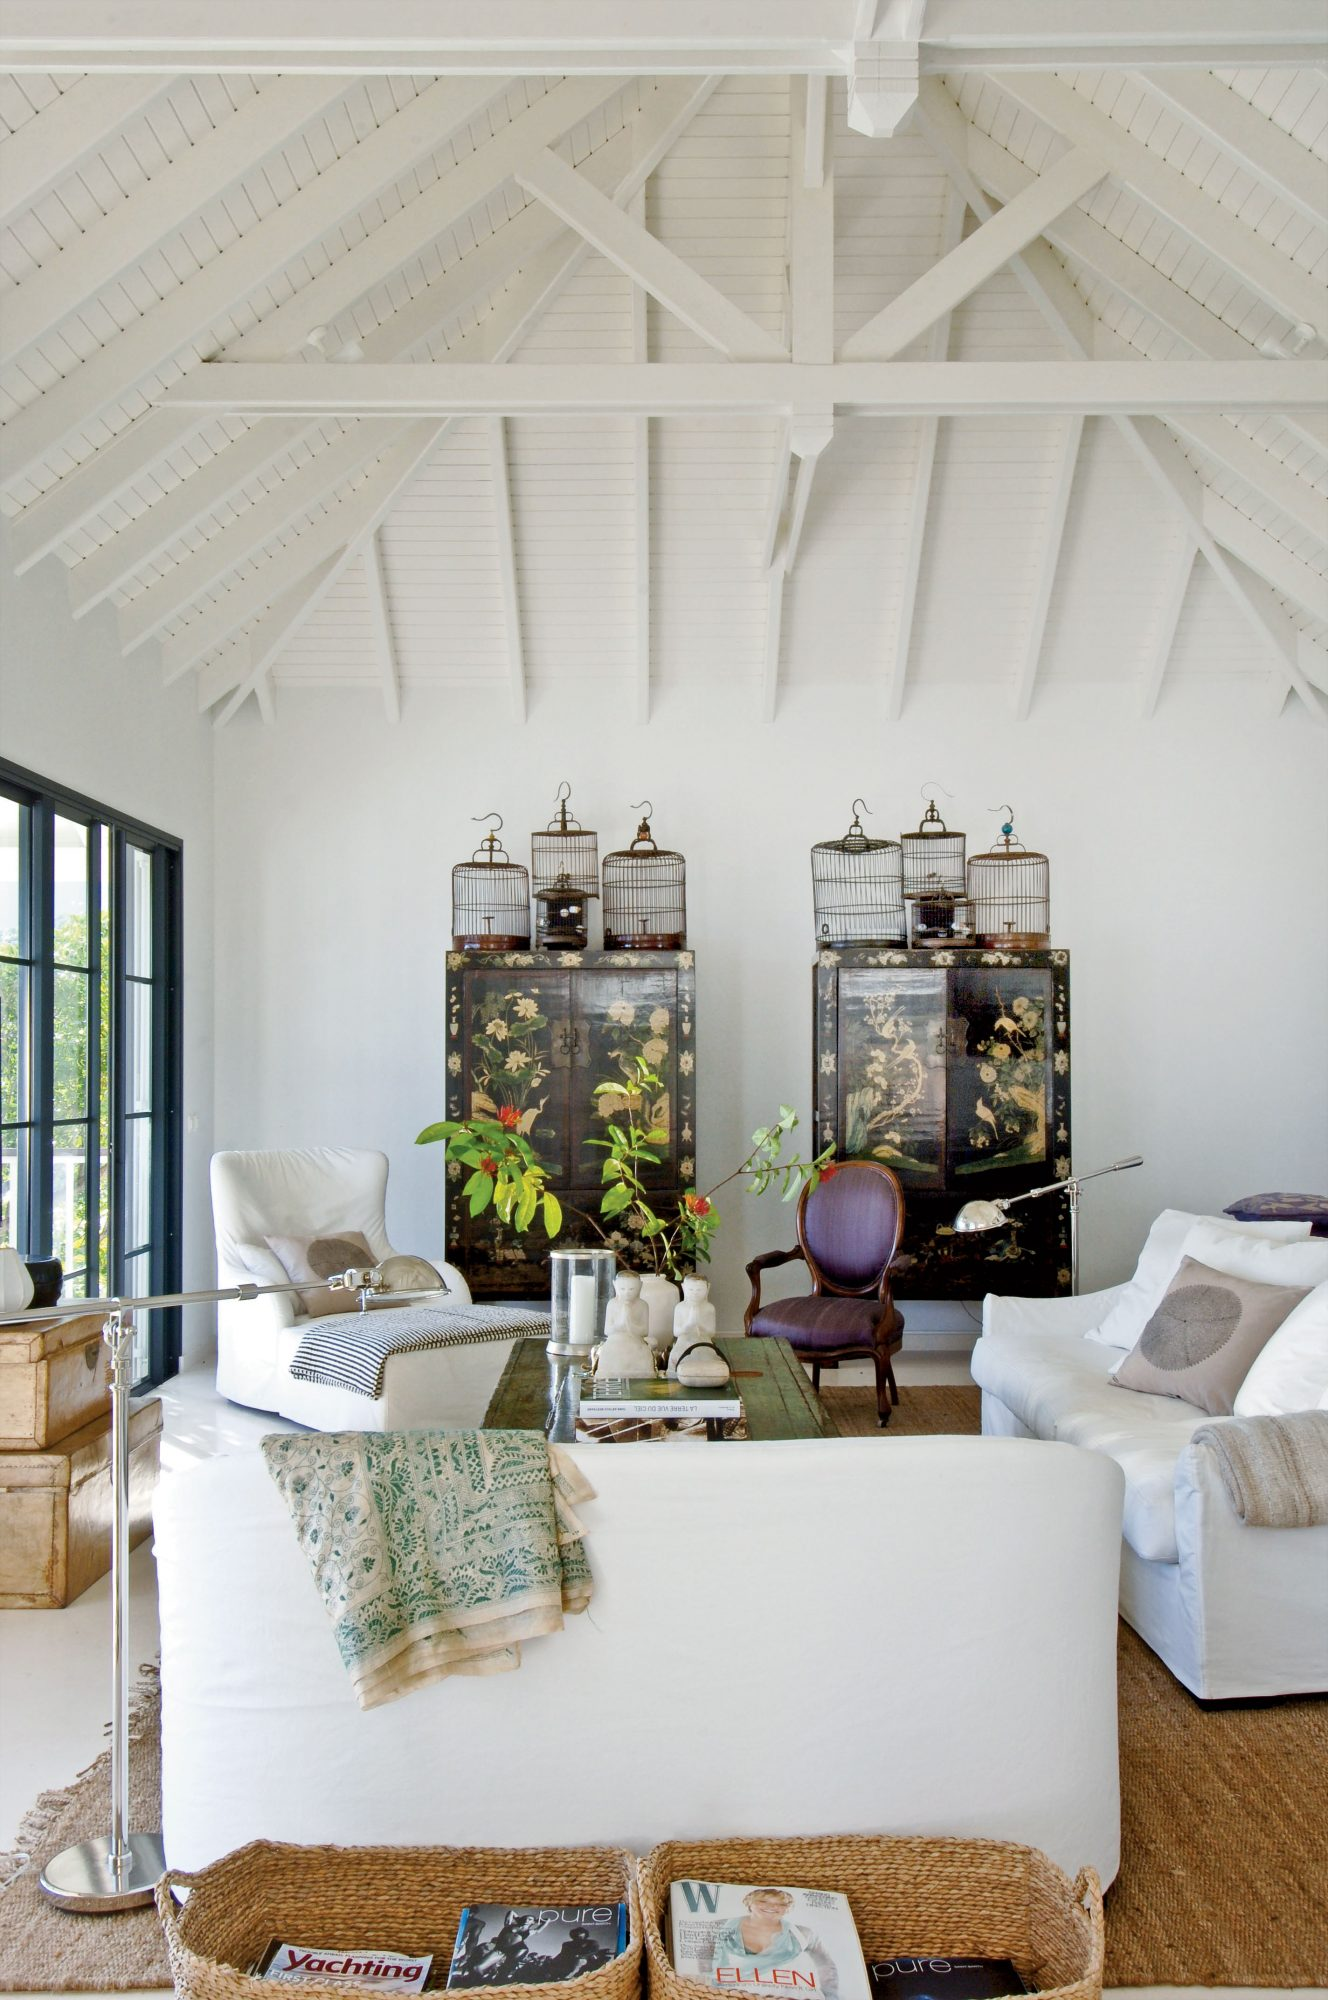 Mix antiques and modern furniture for a cultured sophistication.